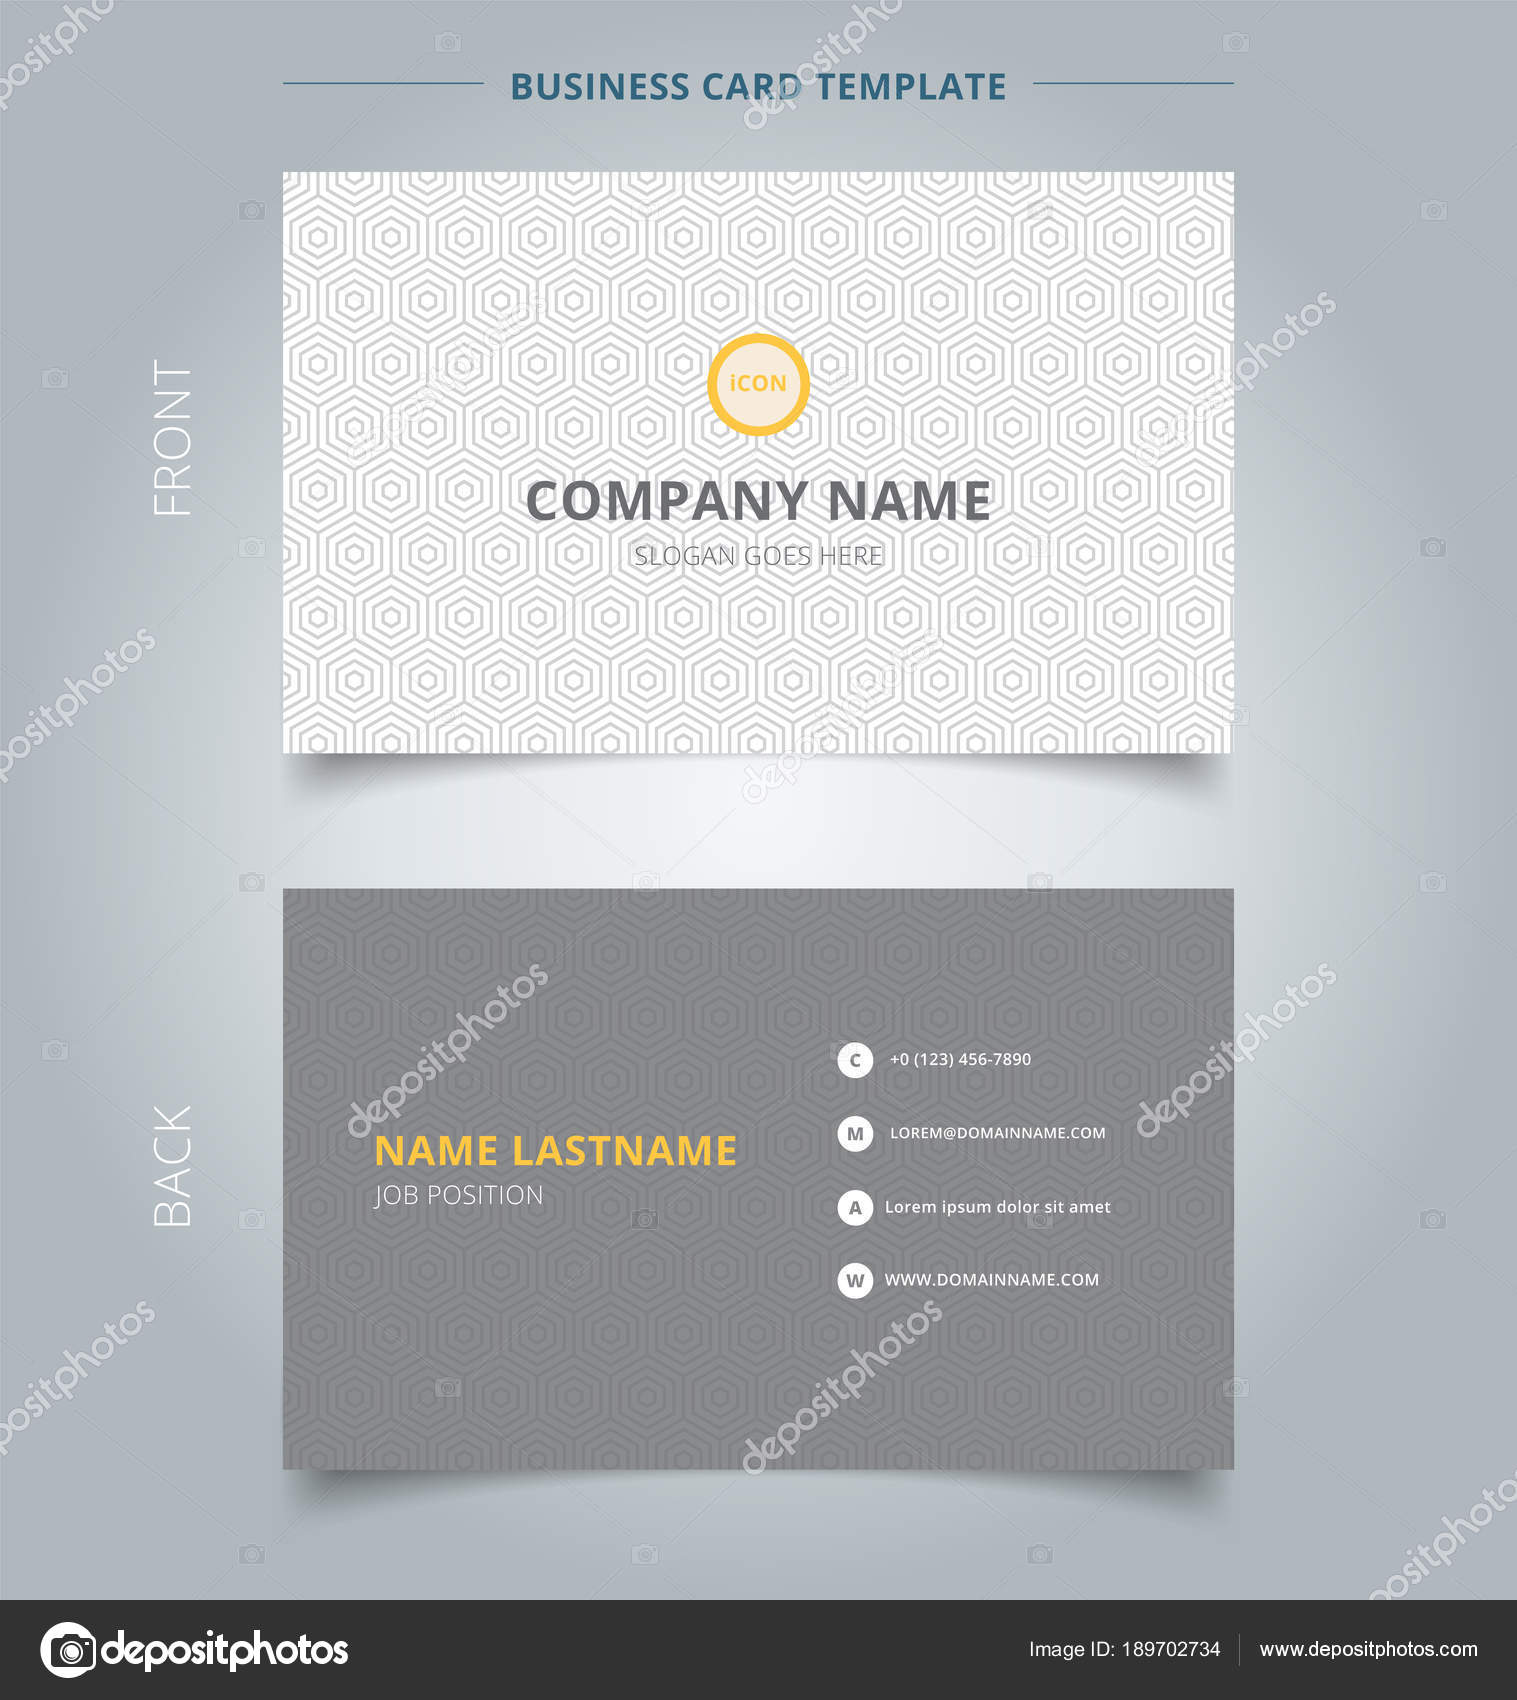 Creative business card and name card template gray hexagon patte ...